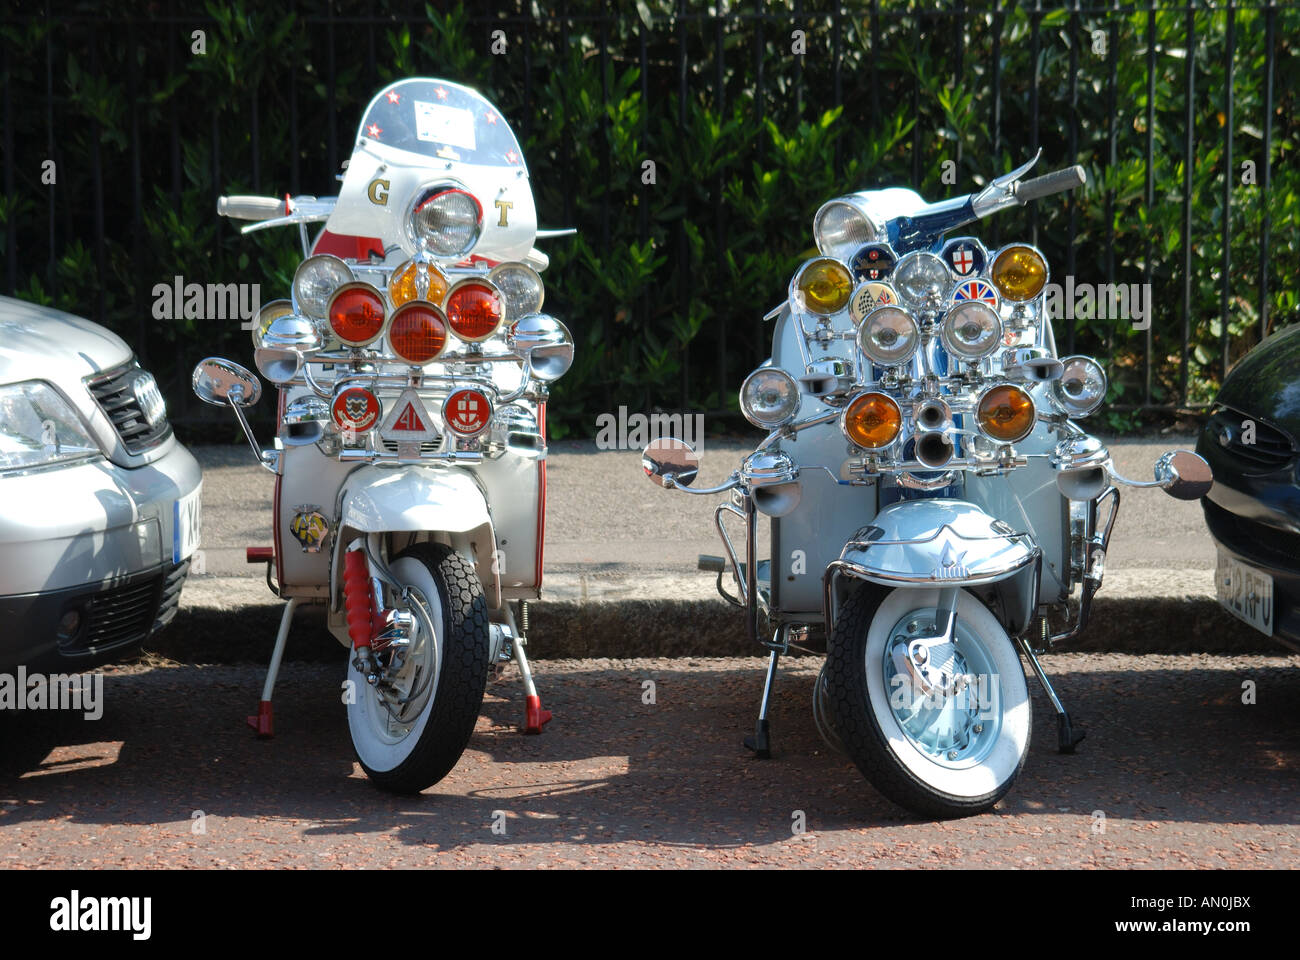 Mod Scooters Photo Stock